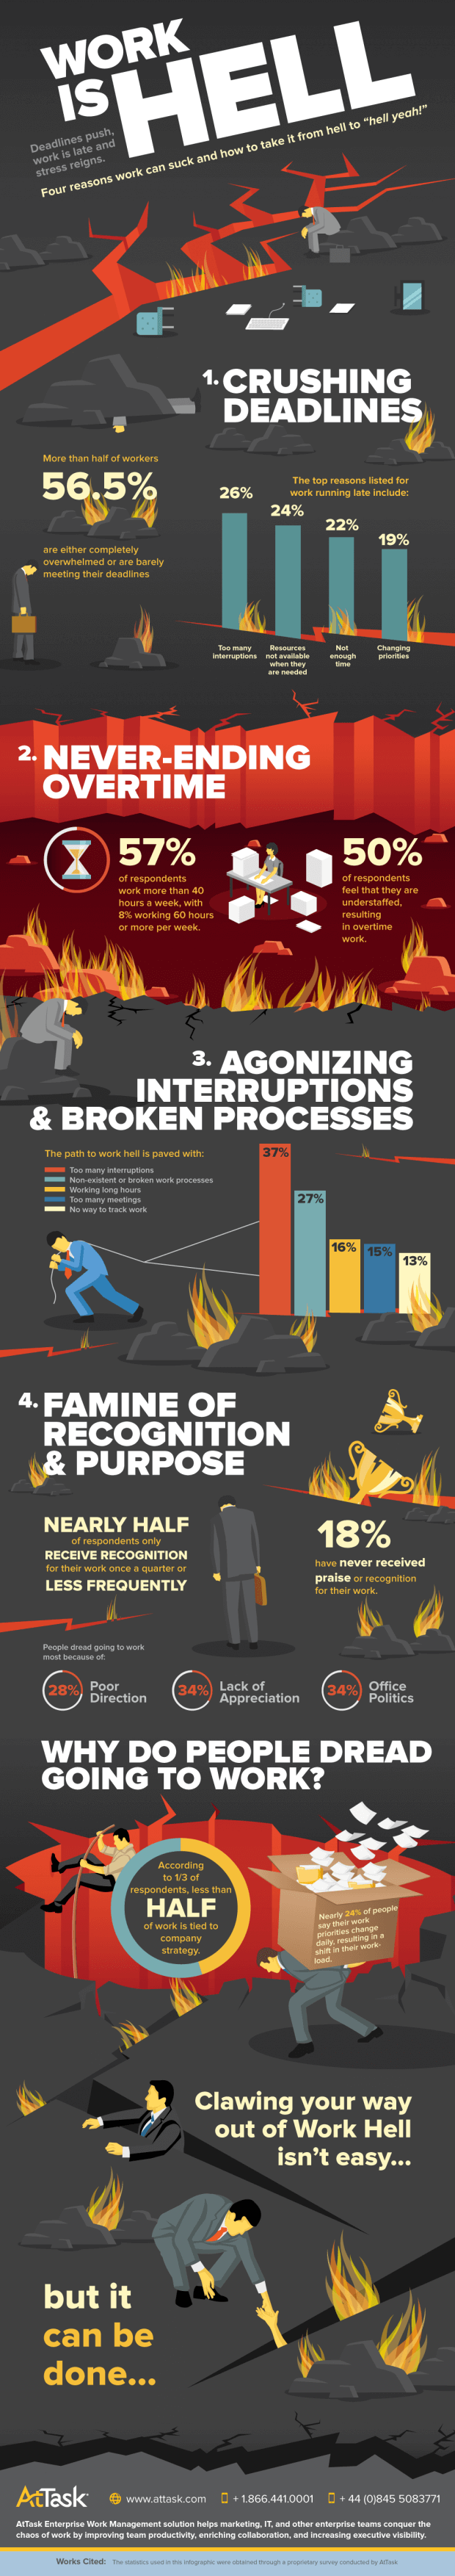 Work_is_Hell-infographic